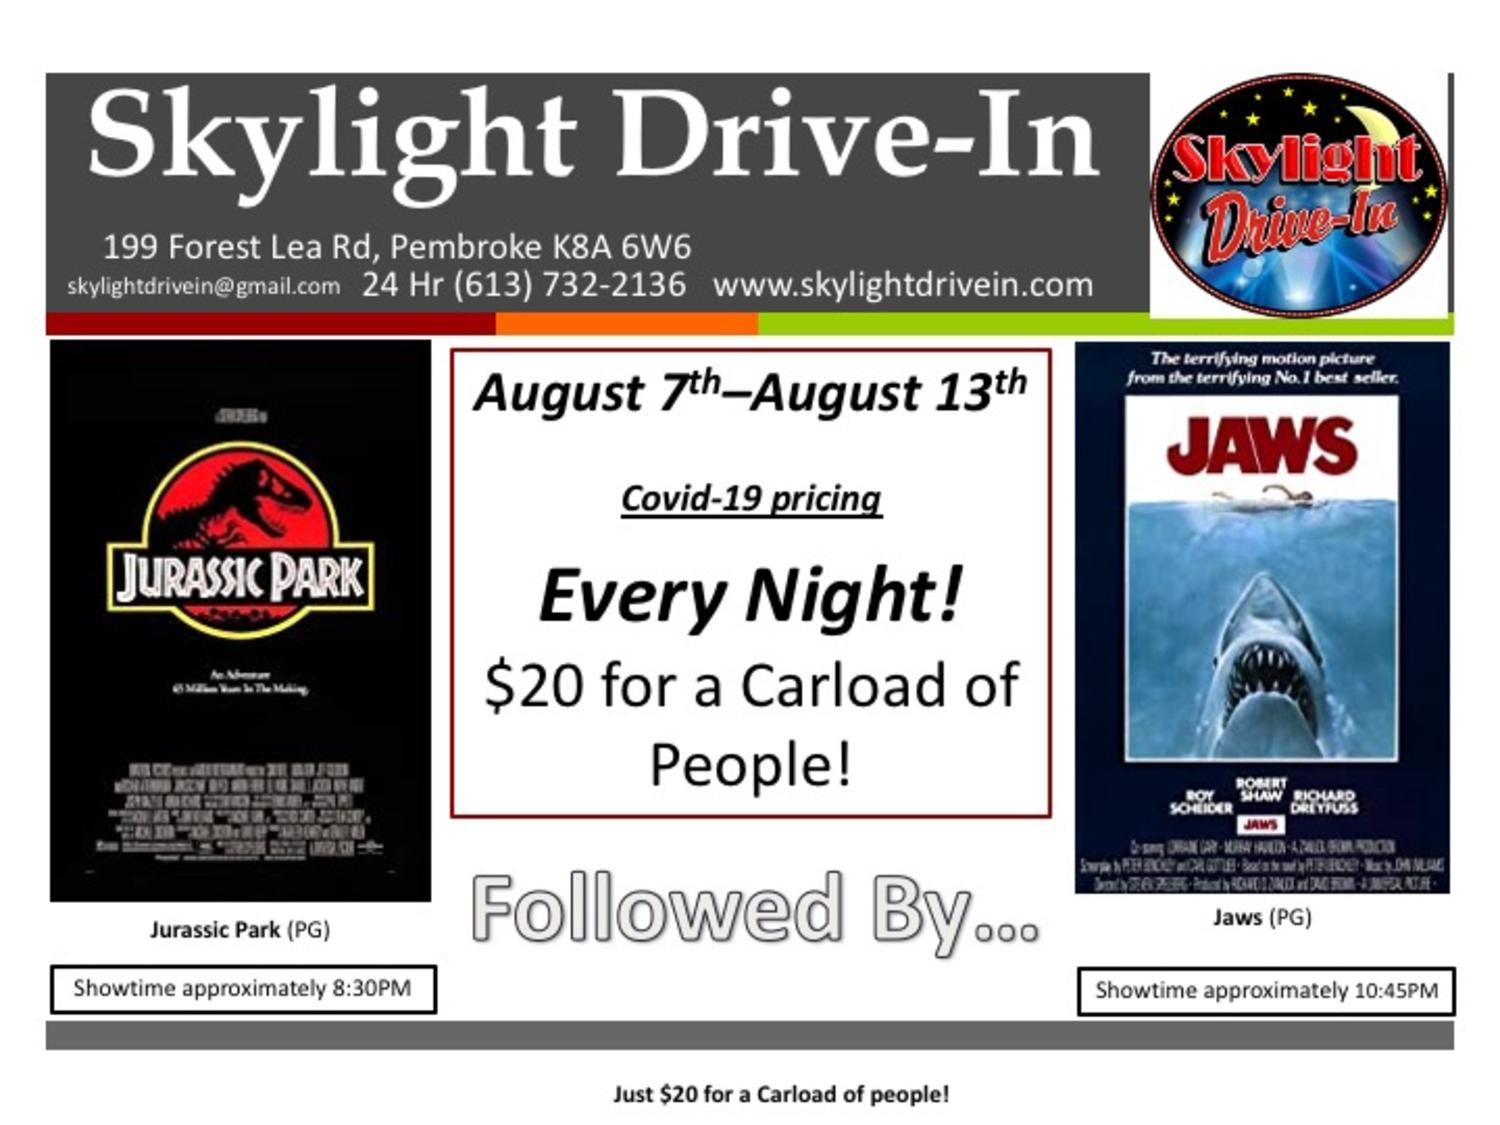 Skylight Drive-In featuring Jurassic Park followed by Jaws